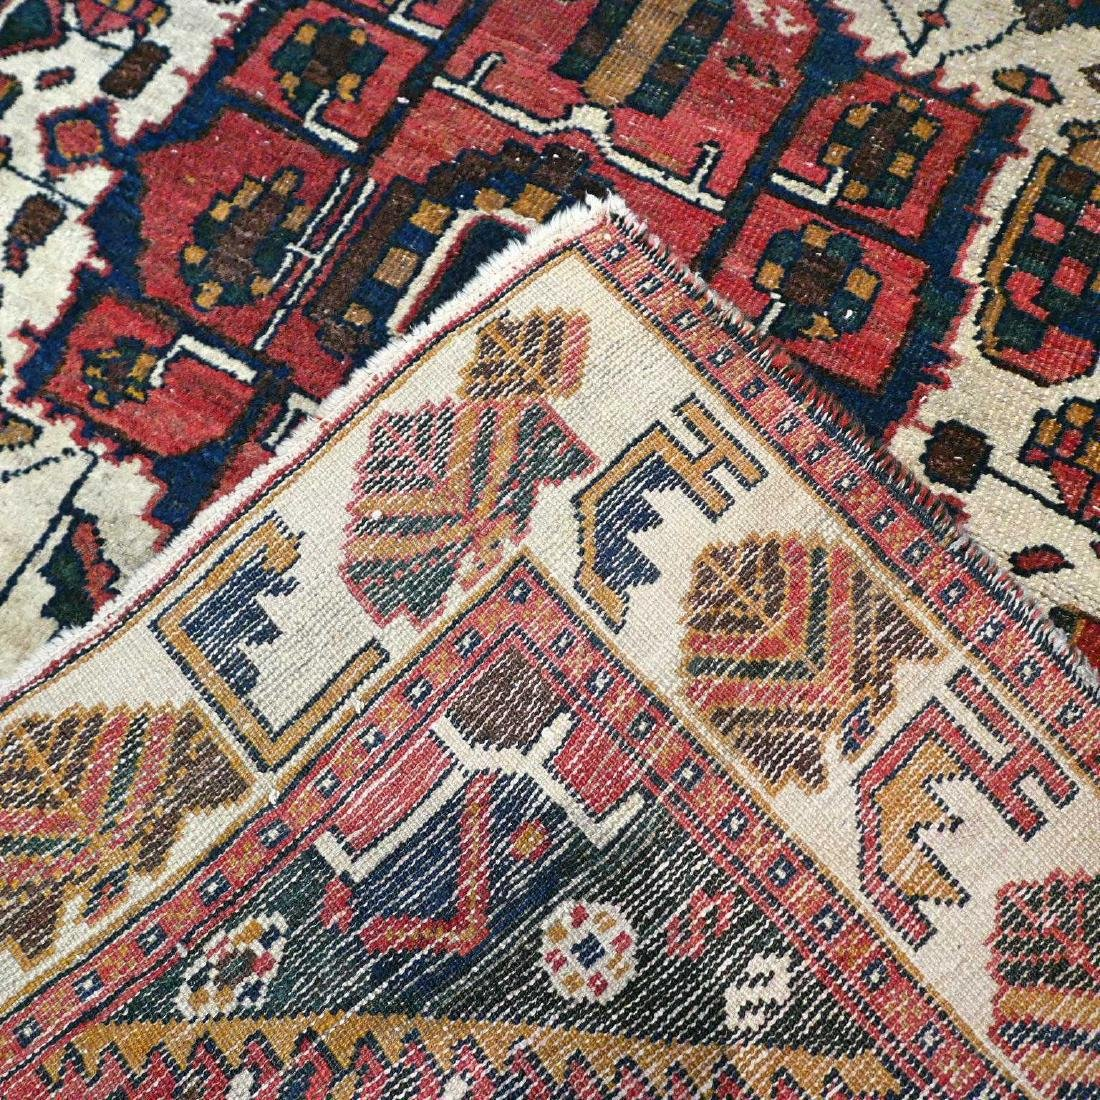 Antique Persian Bakhtiar Wool Hand Knotted Rug 6.3x4.2 - 8